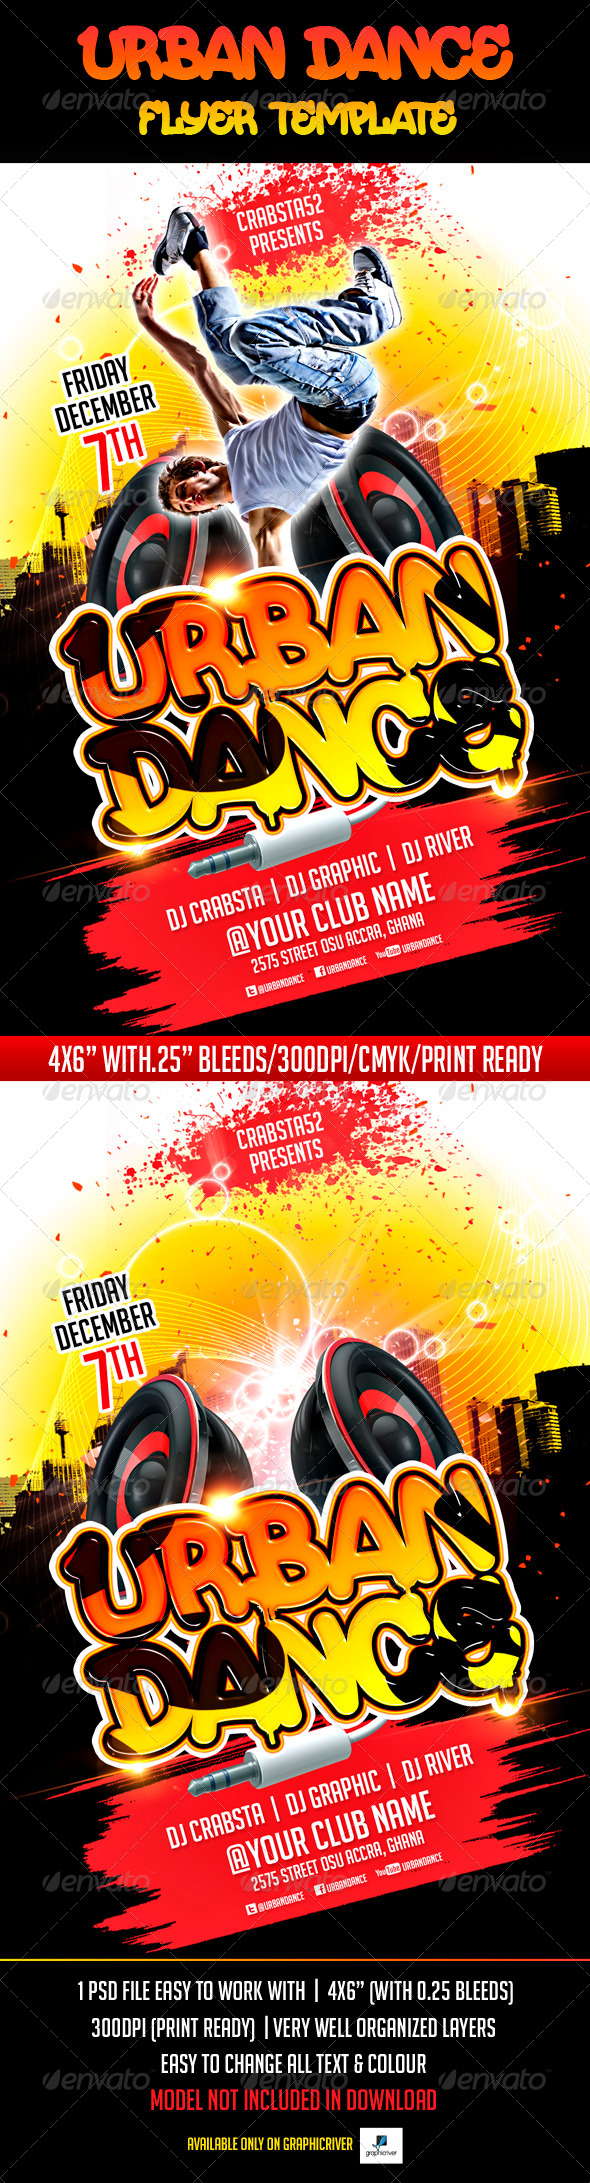 Urban Dance Flyer Template - Events Flyers